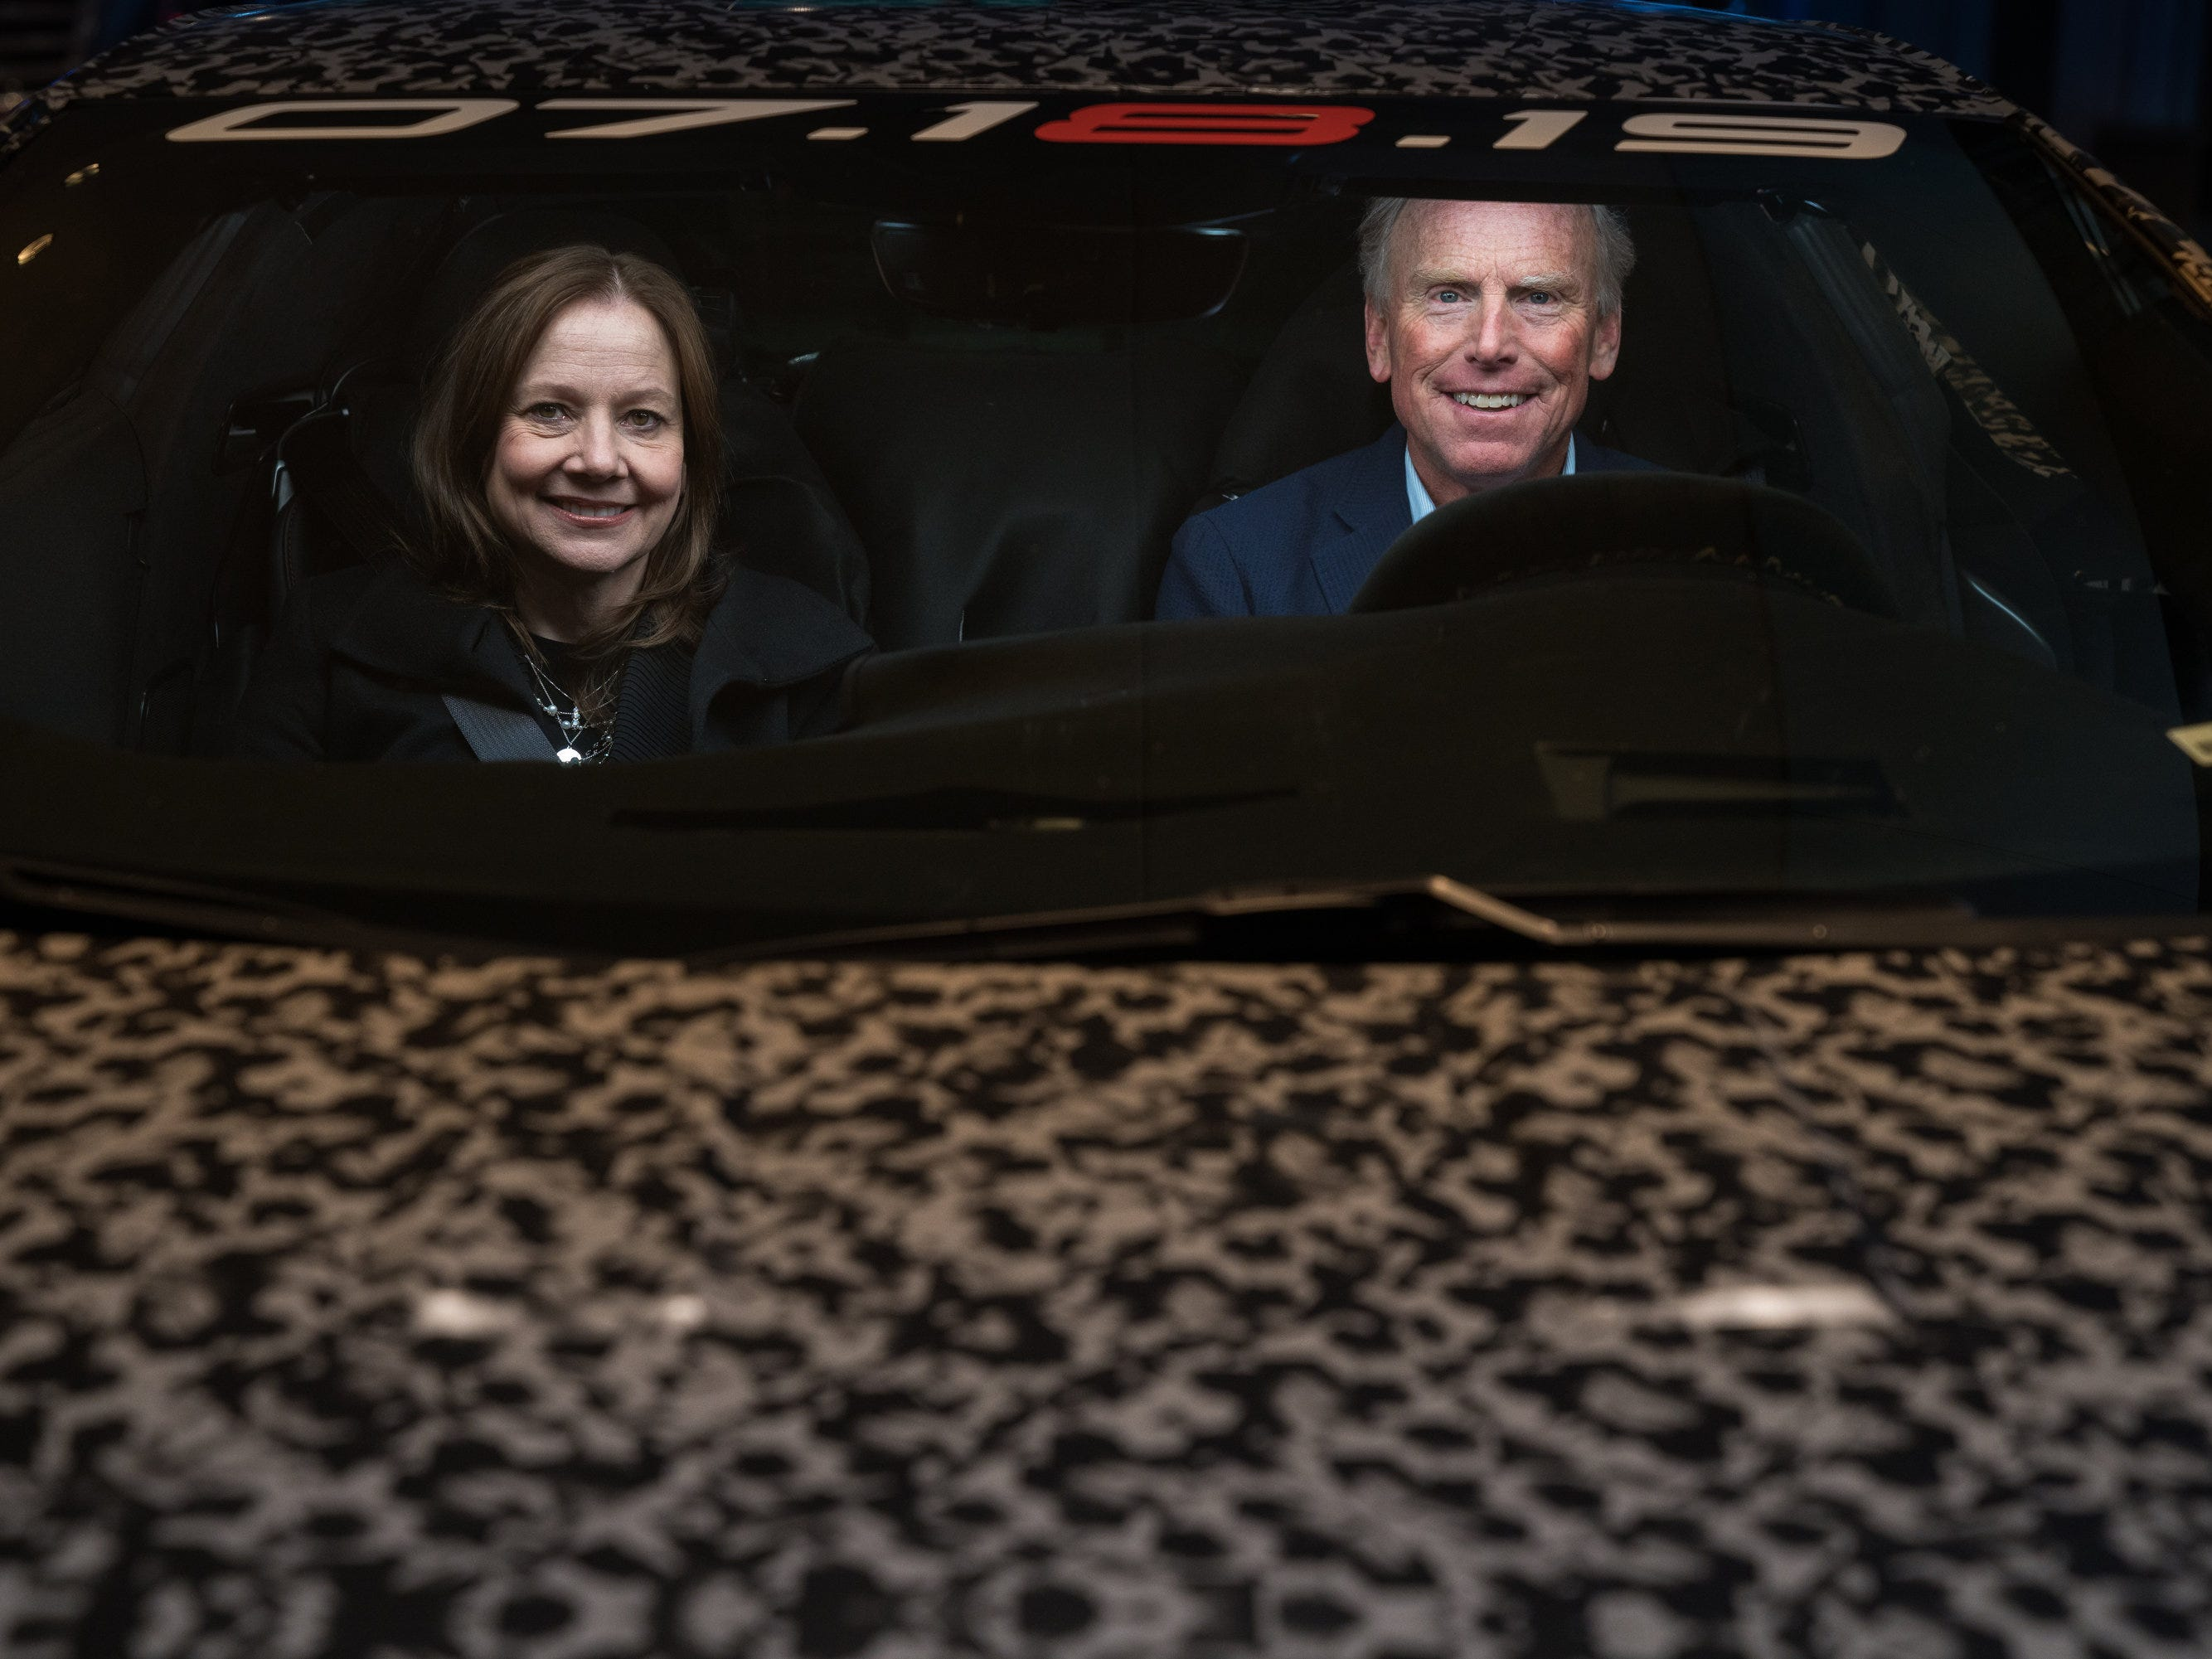 General Motors Chairman and CEO Mary Barra and Corvette Chief Engineer Tadge Juechter inside a camouflaged next generation Chevrolet Corvette.